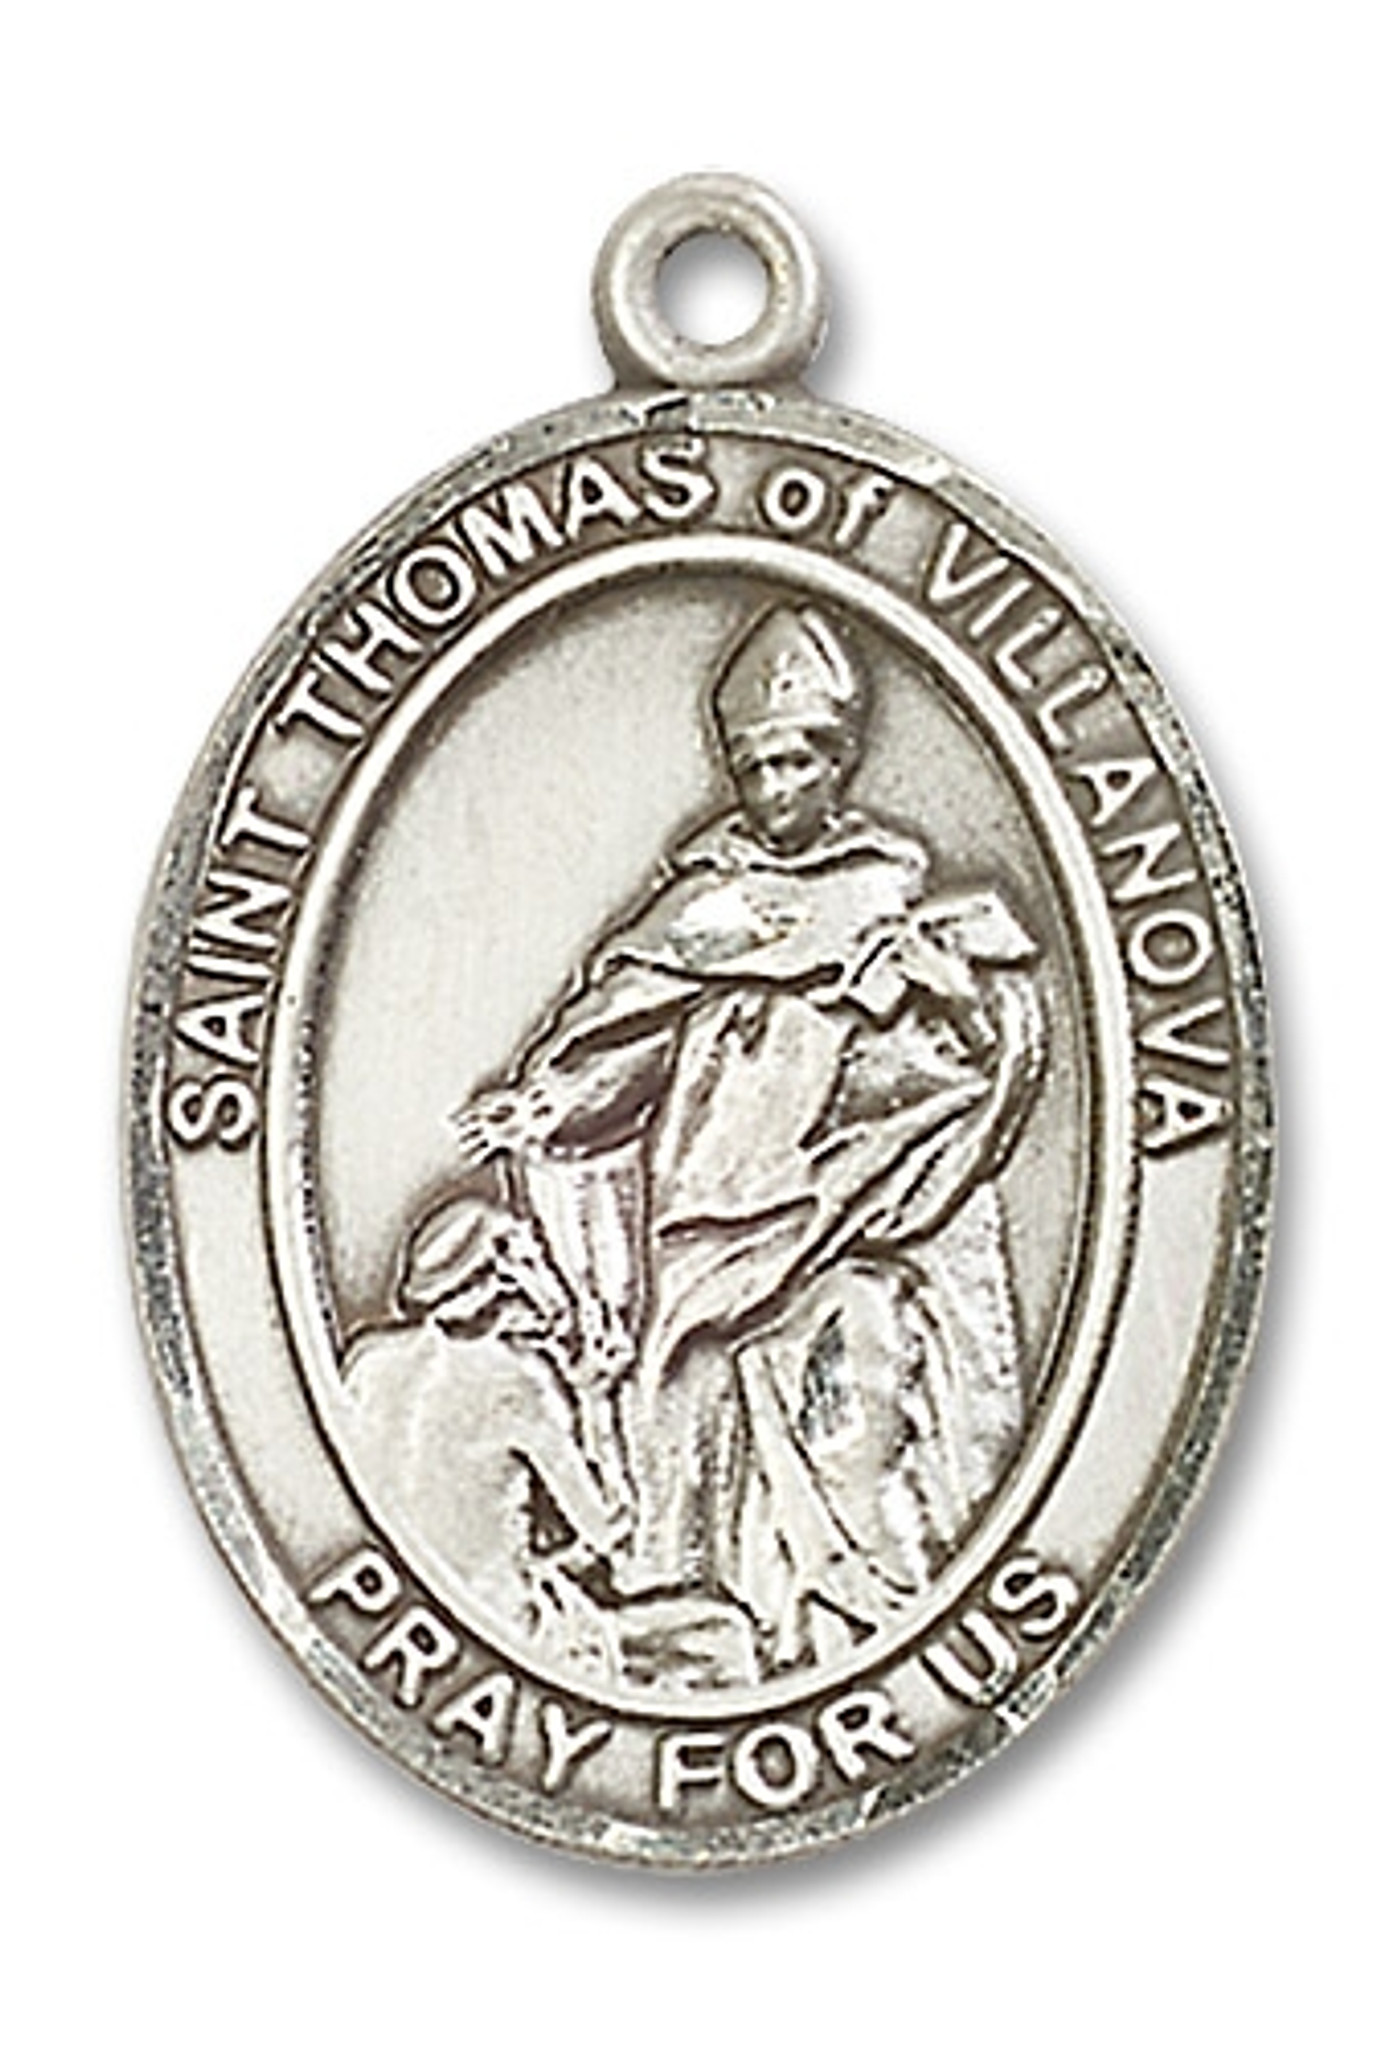 Thomas of Villanova